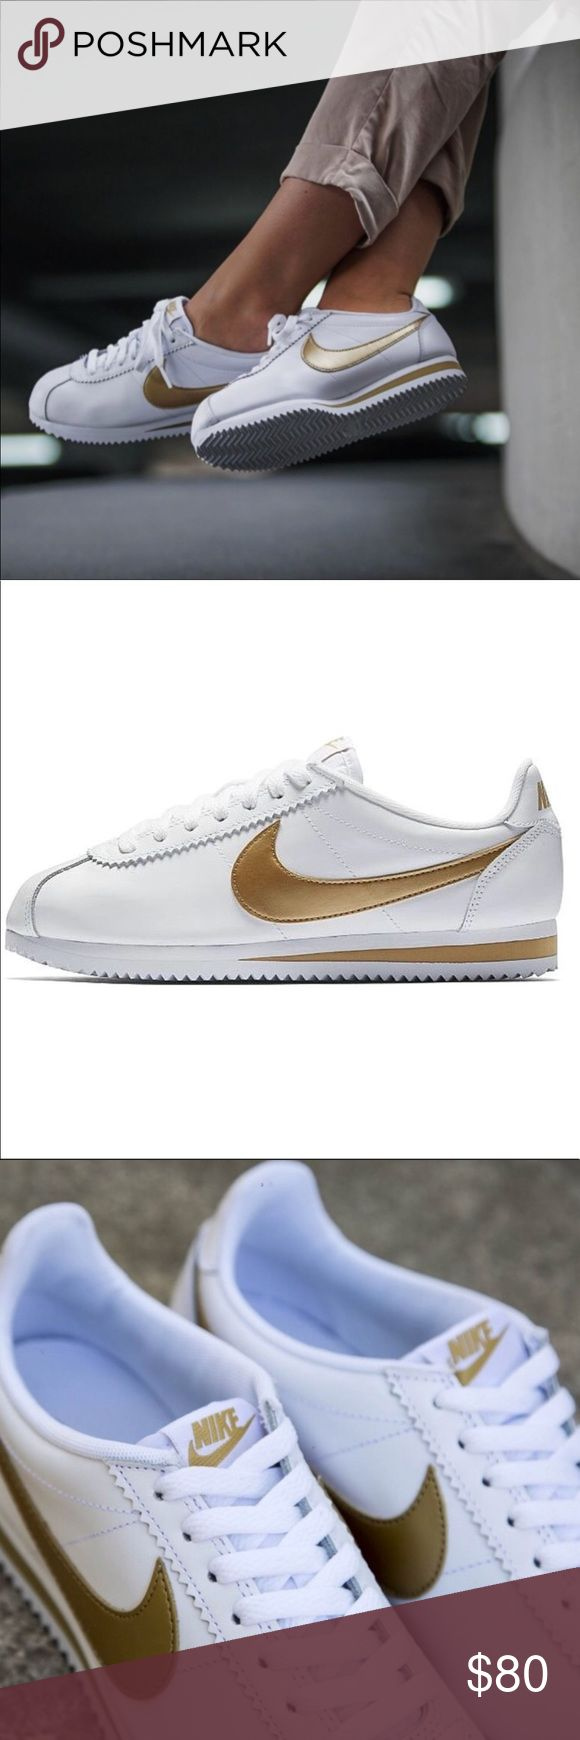 NEW ✨ NIKE CORTEZ WOMENS size 8 New never worn   NIKE CORTEZ WHITE LEATHER   WITH GORGEOUS GOLD SWOOSH.  Ships same or next day, ORIGINAL BOX, NO LID. smoke free home.  PRICE IS FIRM. 100% authentic purchased directly from NIKE ⚡️ reasonable offers are considered through the offer button only. Nike Shoes Athletic Shoes